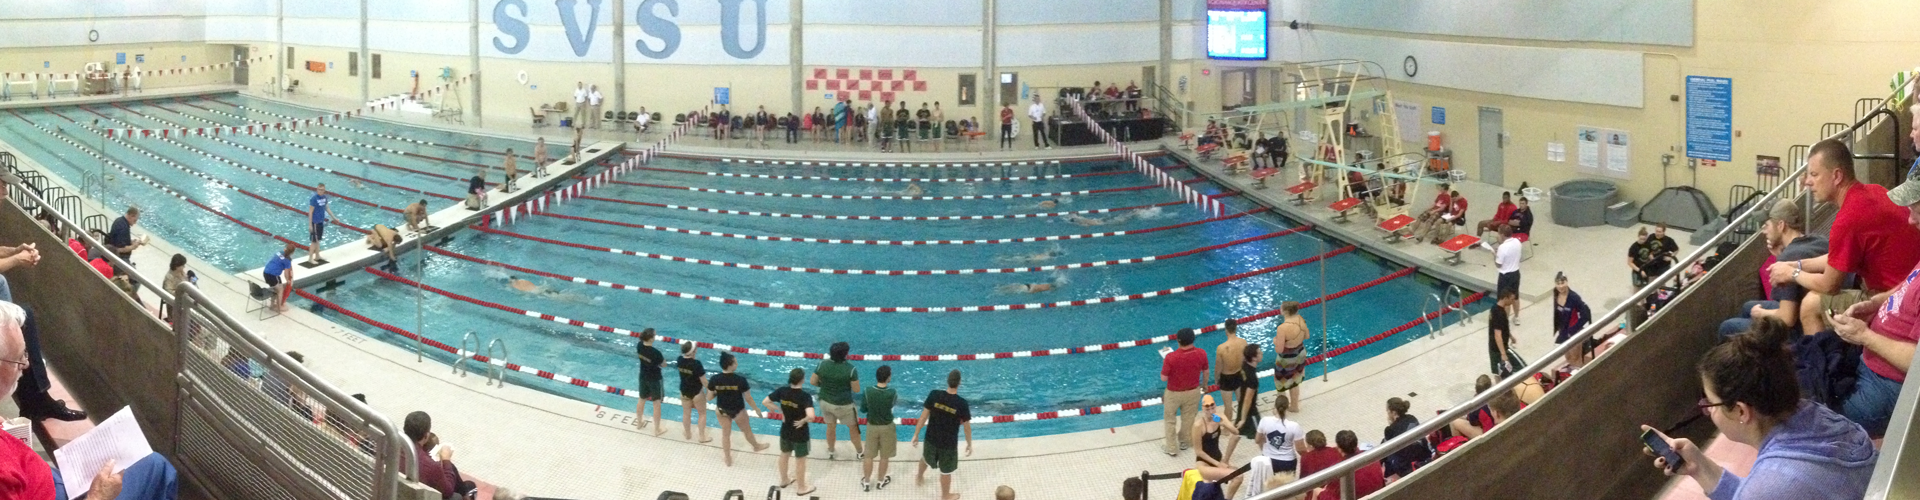 SVSU Swimming and Diving Competition